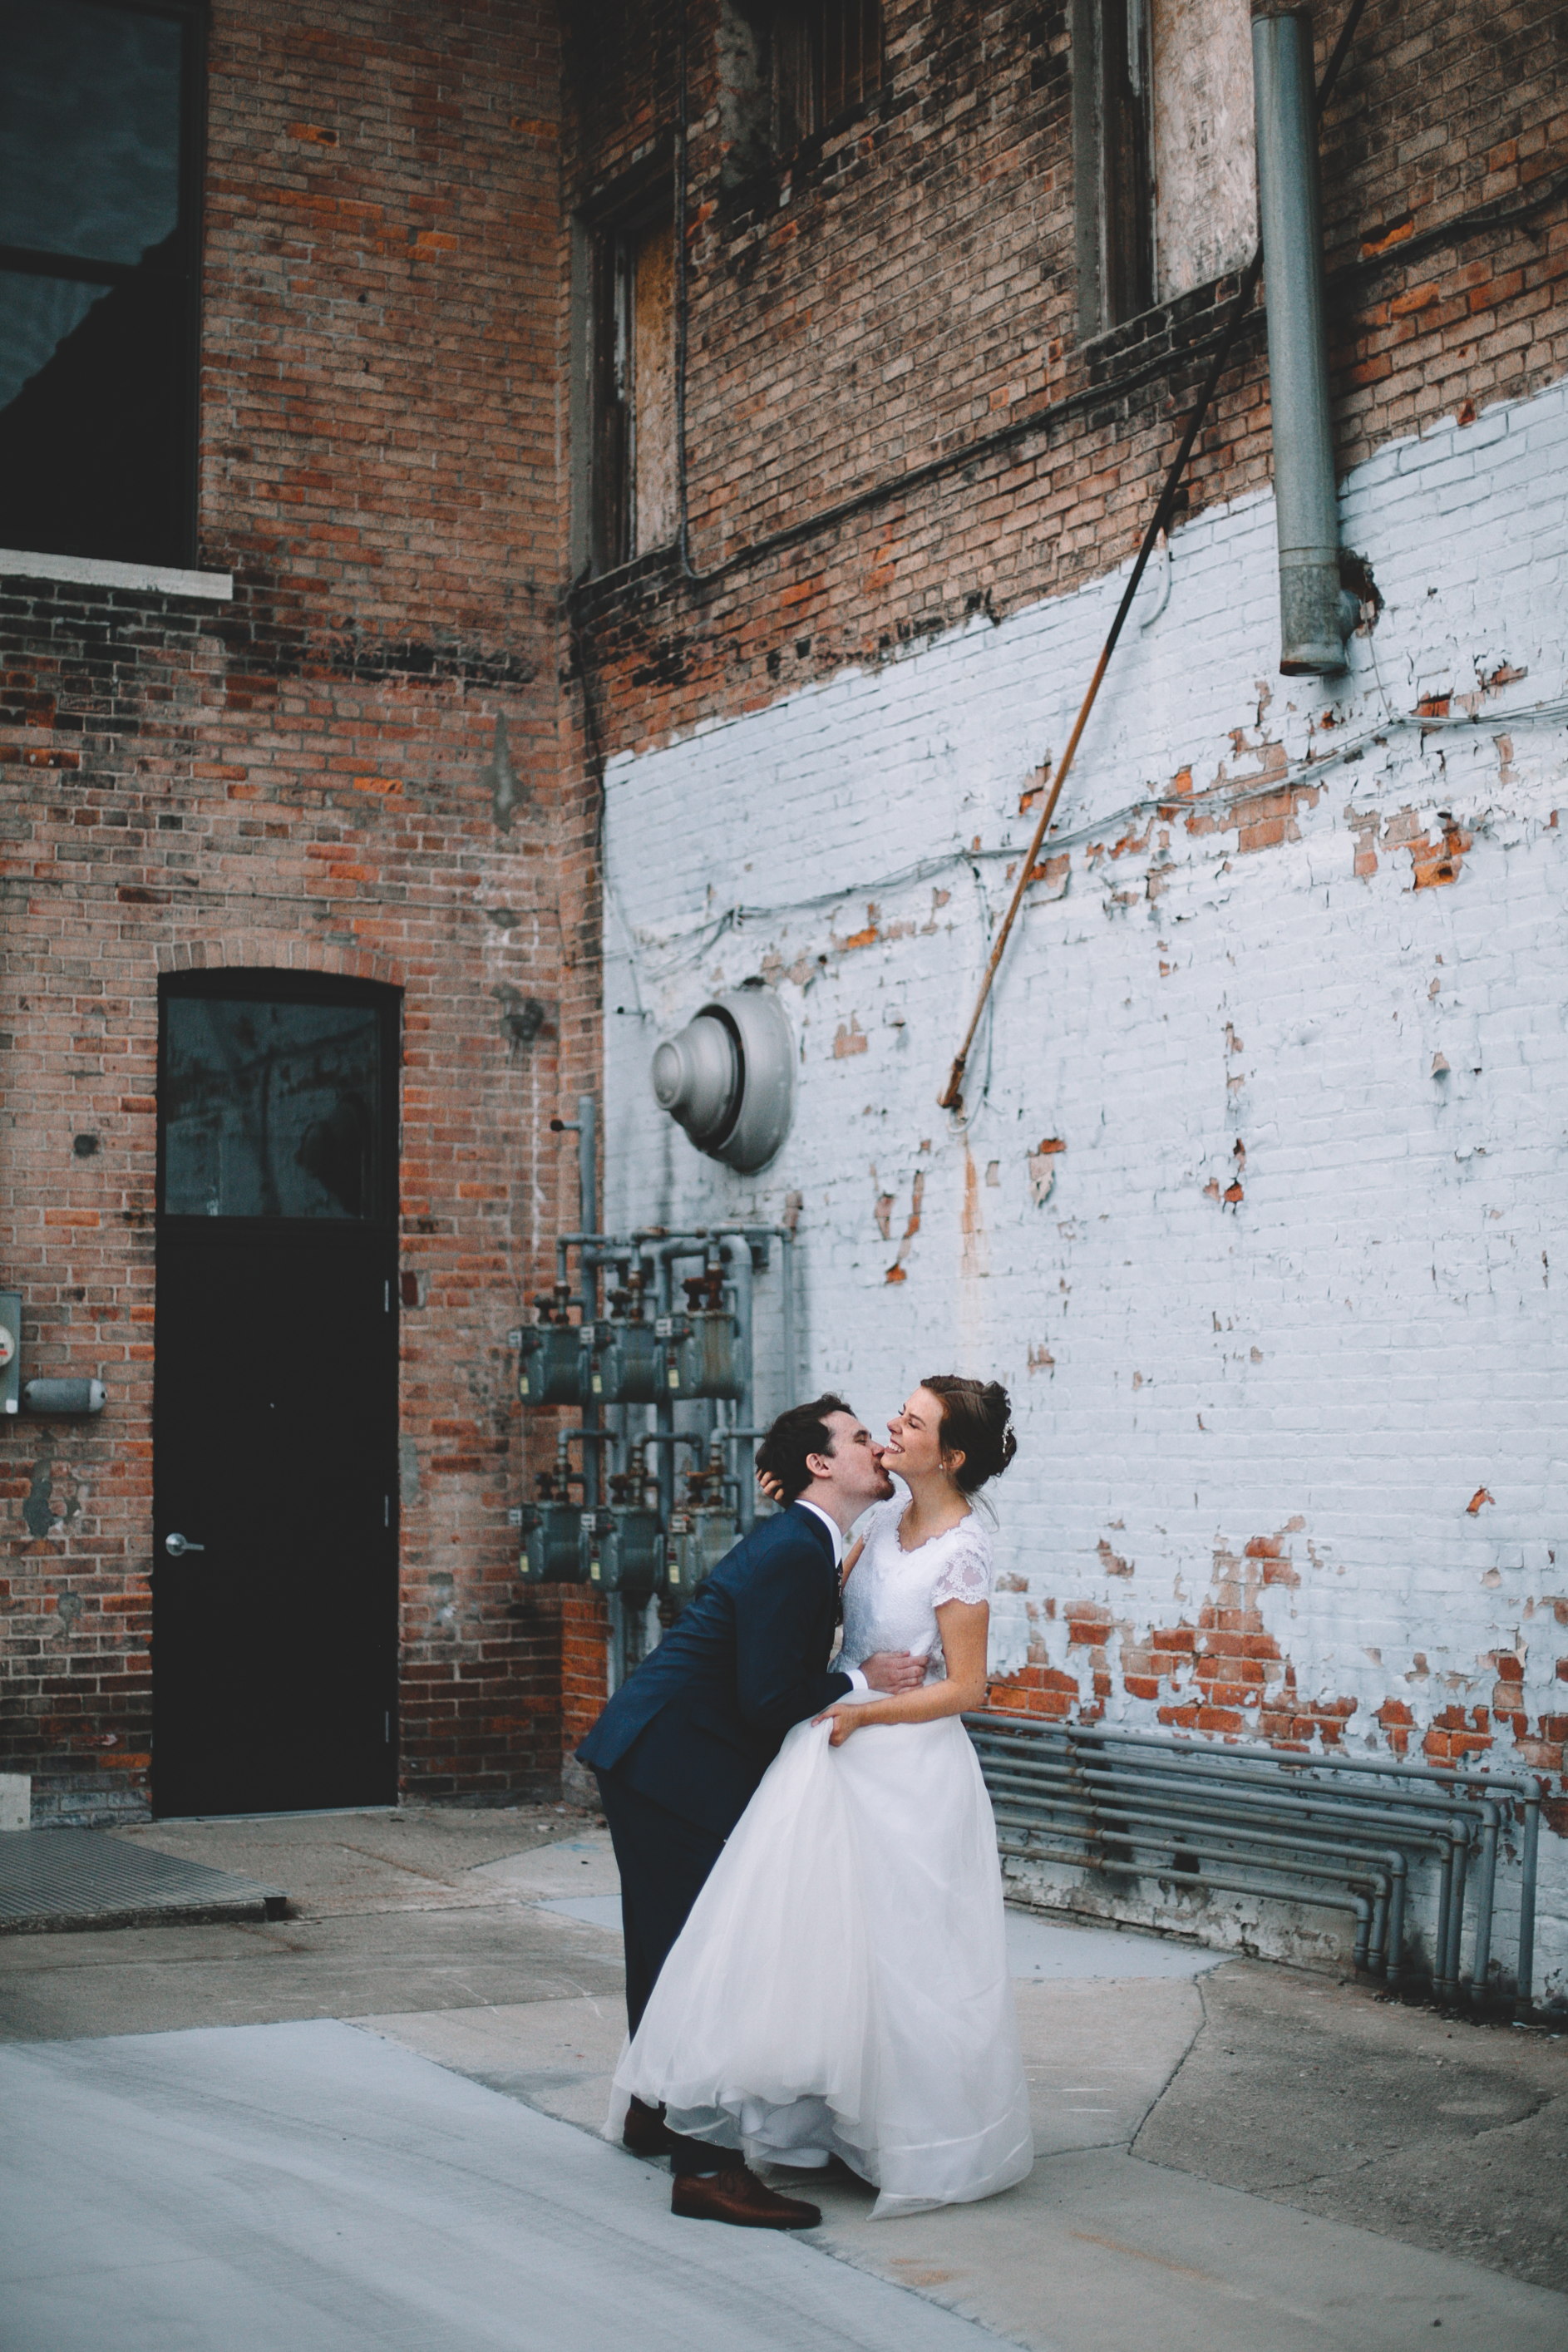 Urban Distressed Brick Wall Bridal Portraits Again We Say Rejoice Photography (16 of 18).jpg